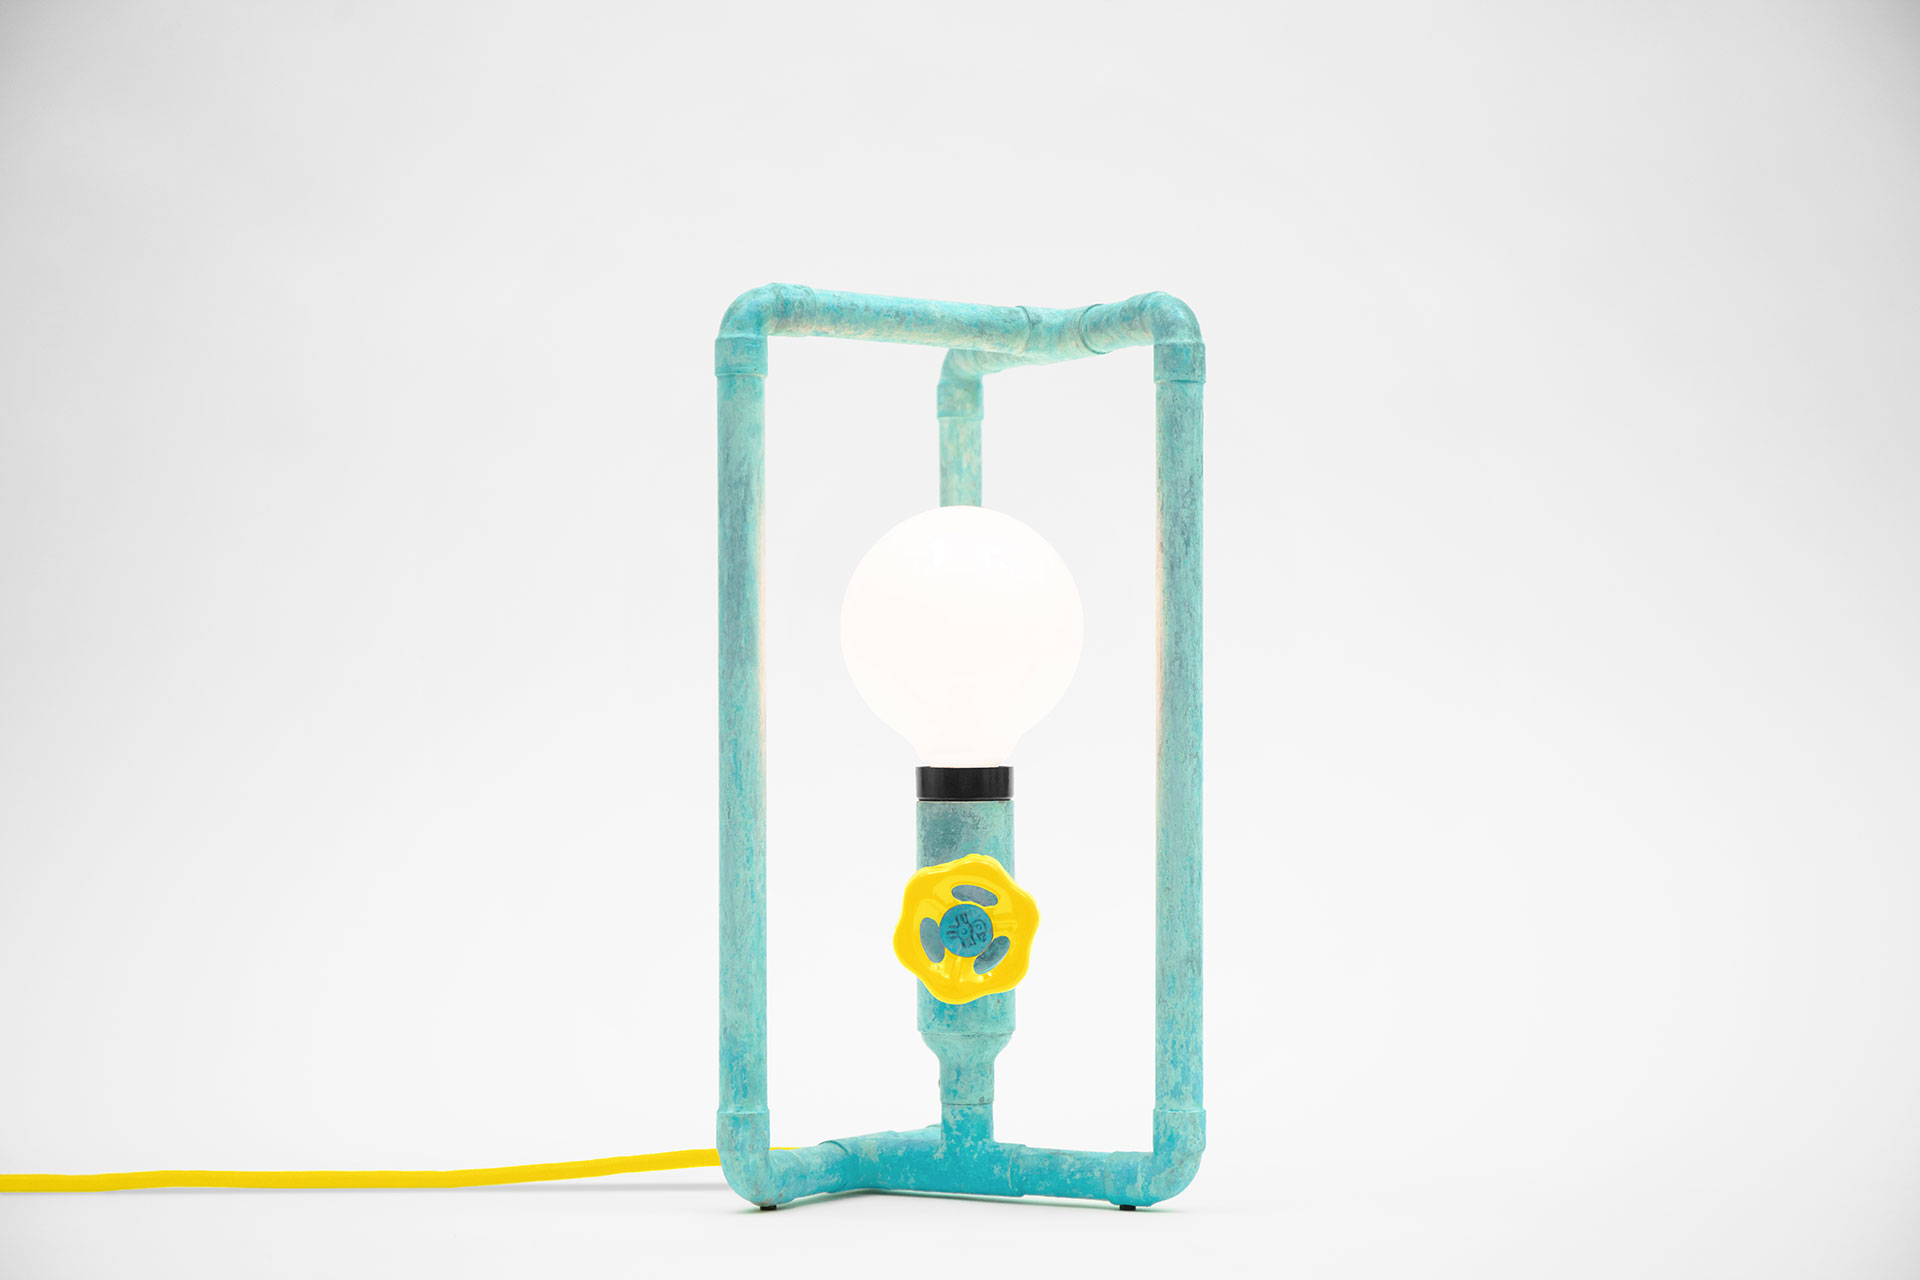 Cozy bedside lamp in joyful turquoise color with yellow knob dimmer and yellow braided cord